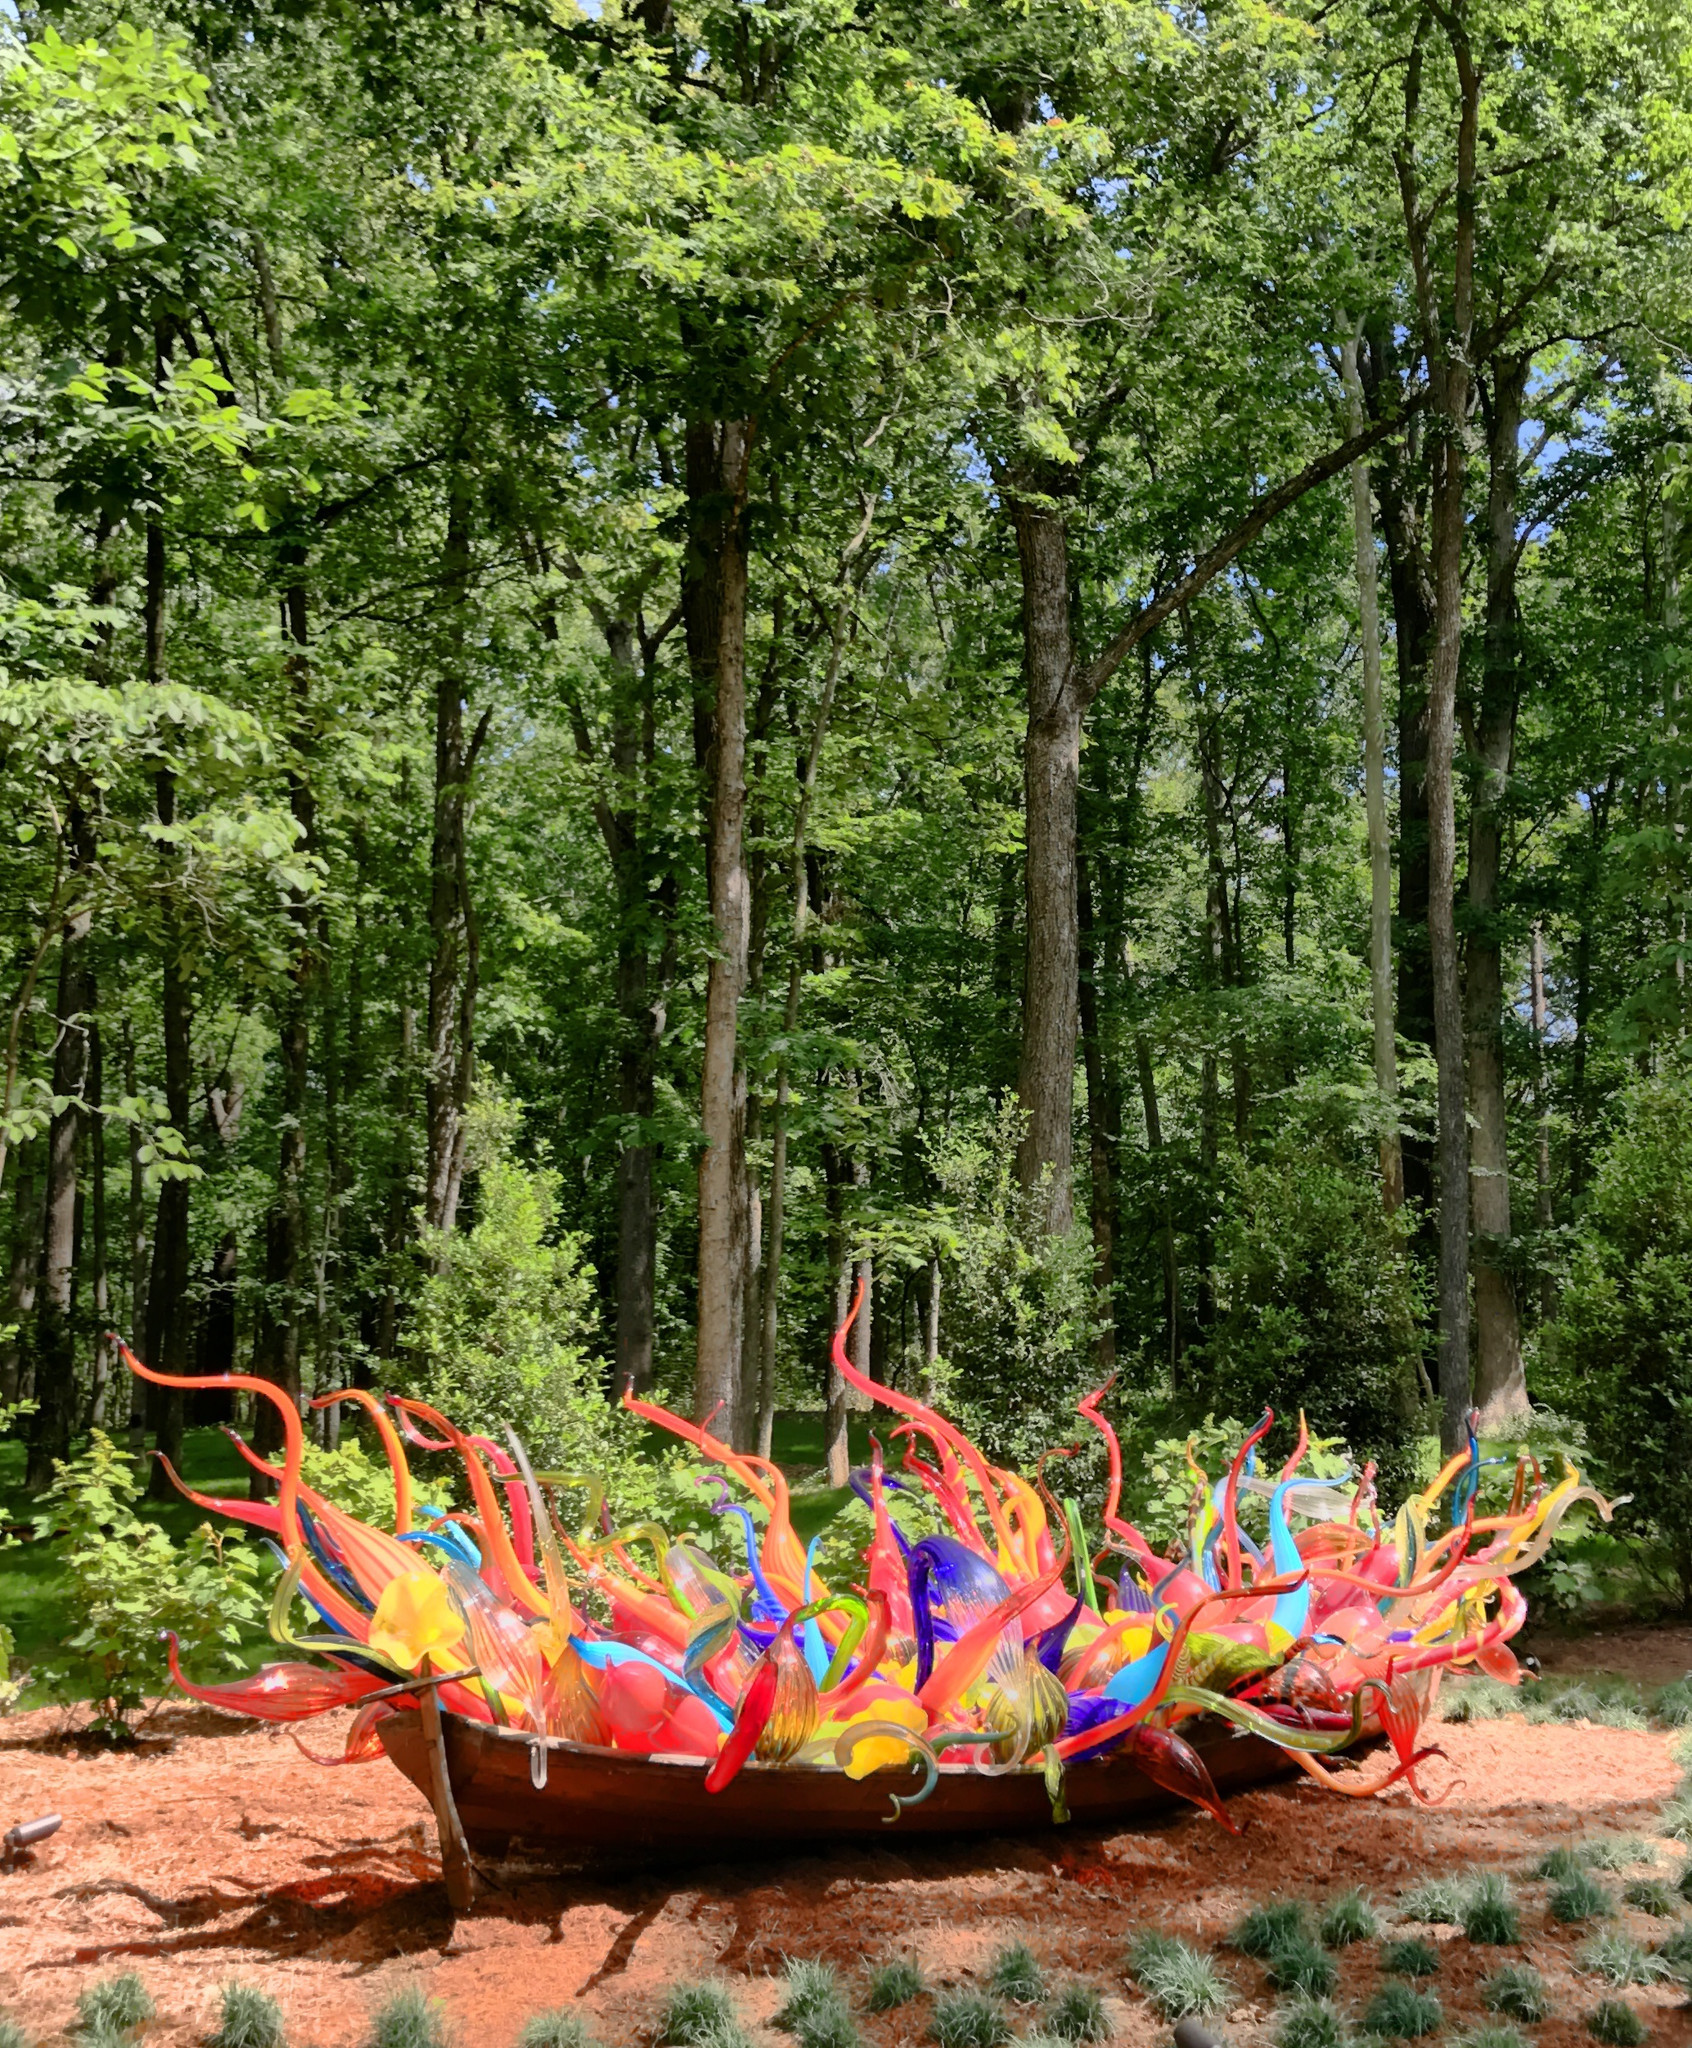 """Dale Chihuly's old wooden rowboat is filled with glass-blown forms to create """"Fiori Boat,"""" part of the Chihuly in the Forest outdoor exhibition at Crystal Bridges Museum of American Art."""